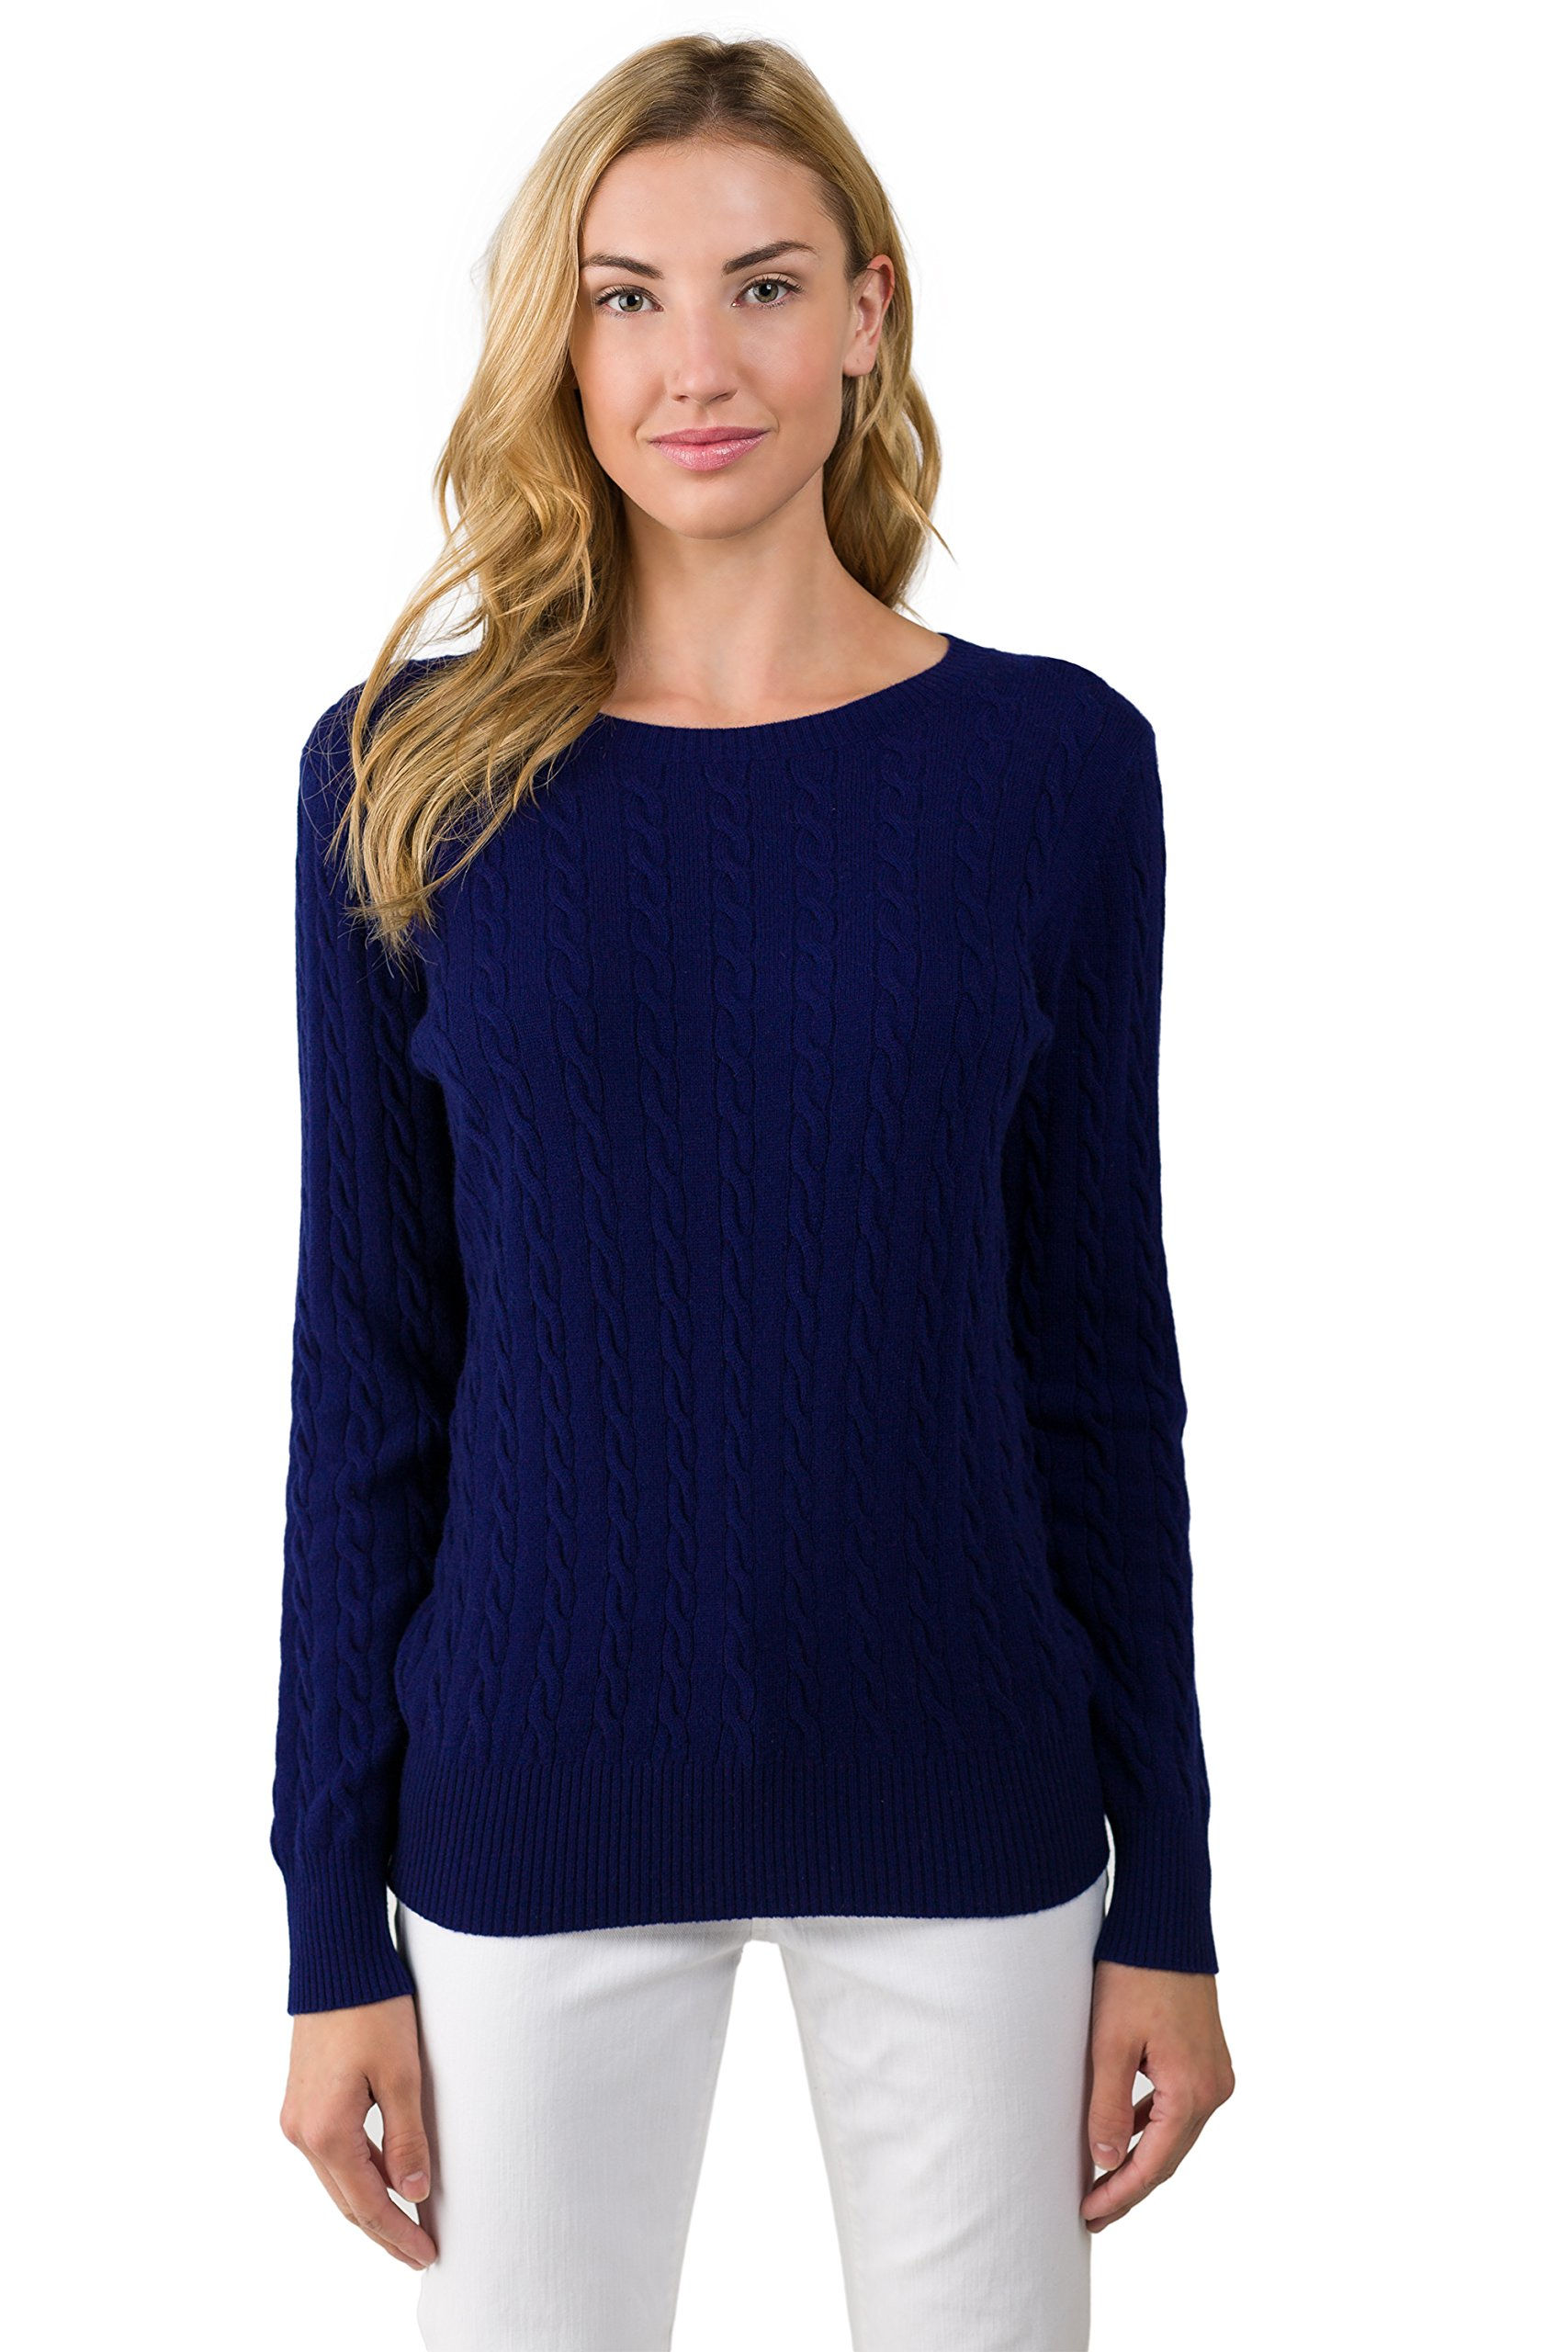 J CASHMERE Women's 100% Cashmere Long Sleeve Pullover Cable Crewneck Sweater Midnight Small